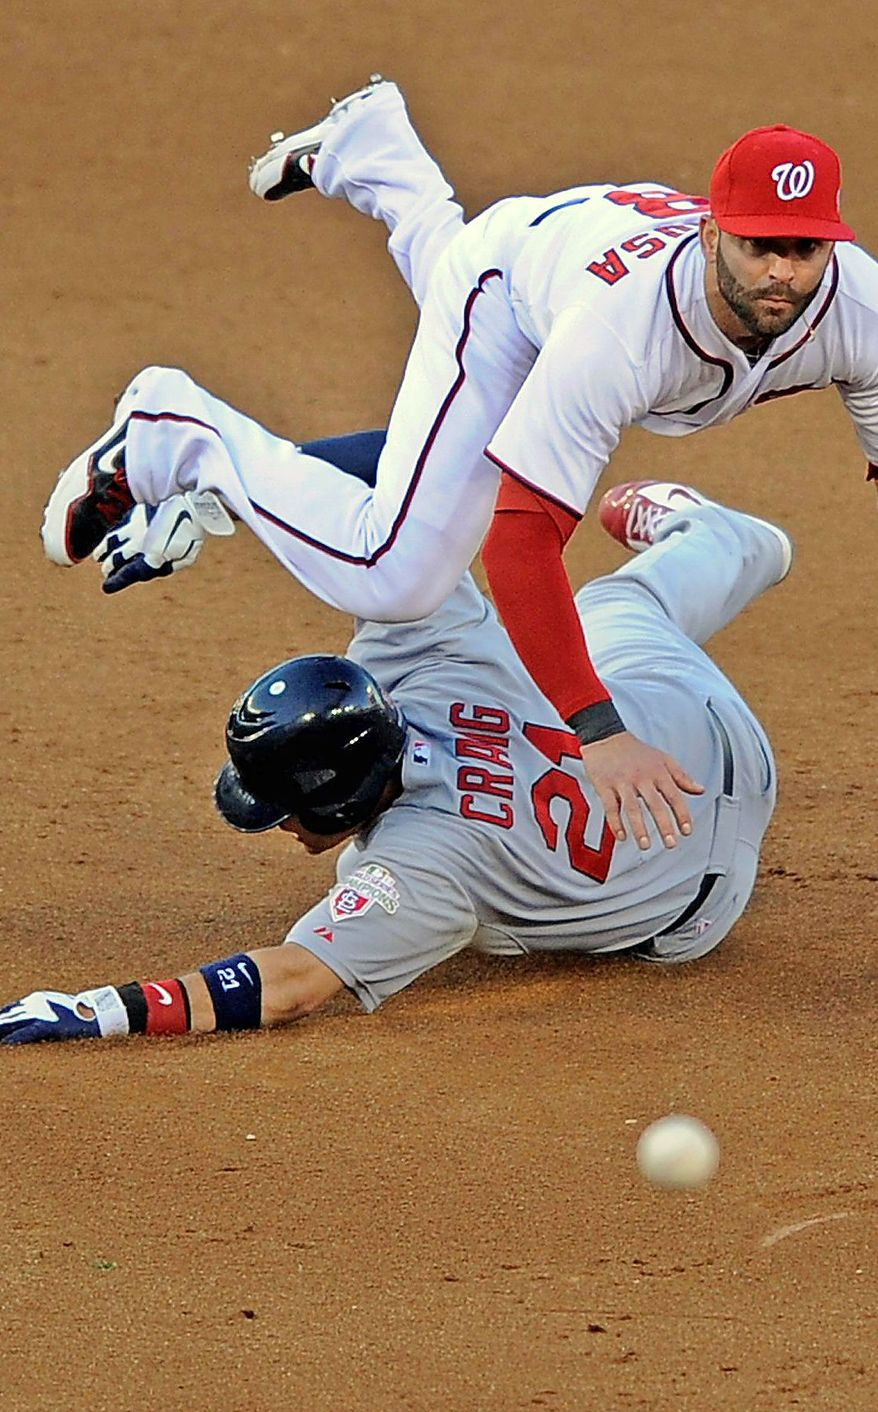 Washington Nationals second baseman Danny Espinosa, top, leaps over St. Louis Cardinals' Allen Craig as he throws out Cardinals batter Yadier Molina at first base in the sixth inning of Game 4 of the National League division baseball series on Thursday, Oct. 11, 2012, in Washington. Craig was safe at second base. (AP Photo/Nick Wass)